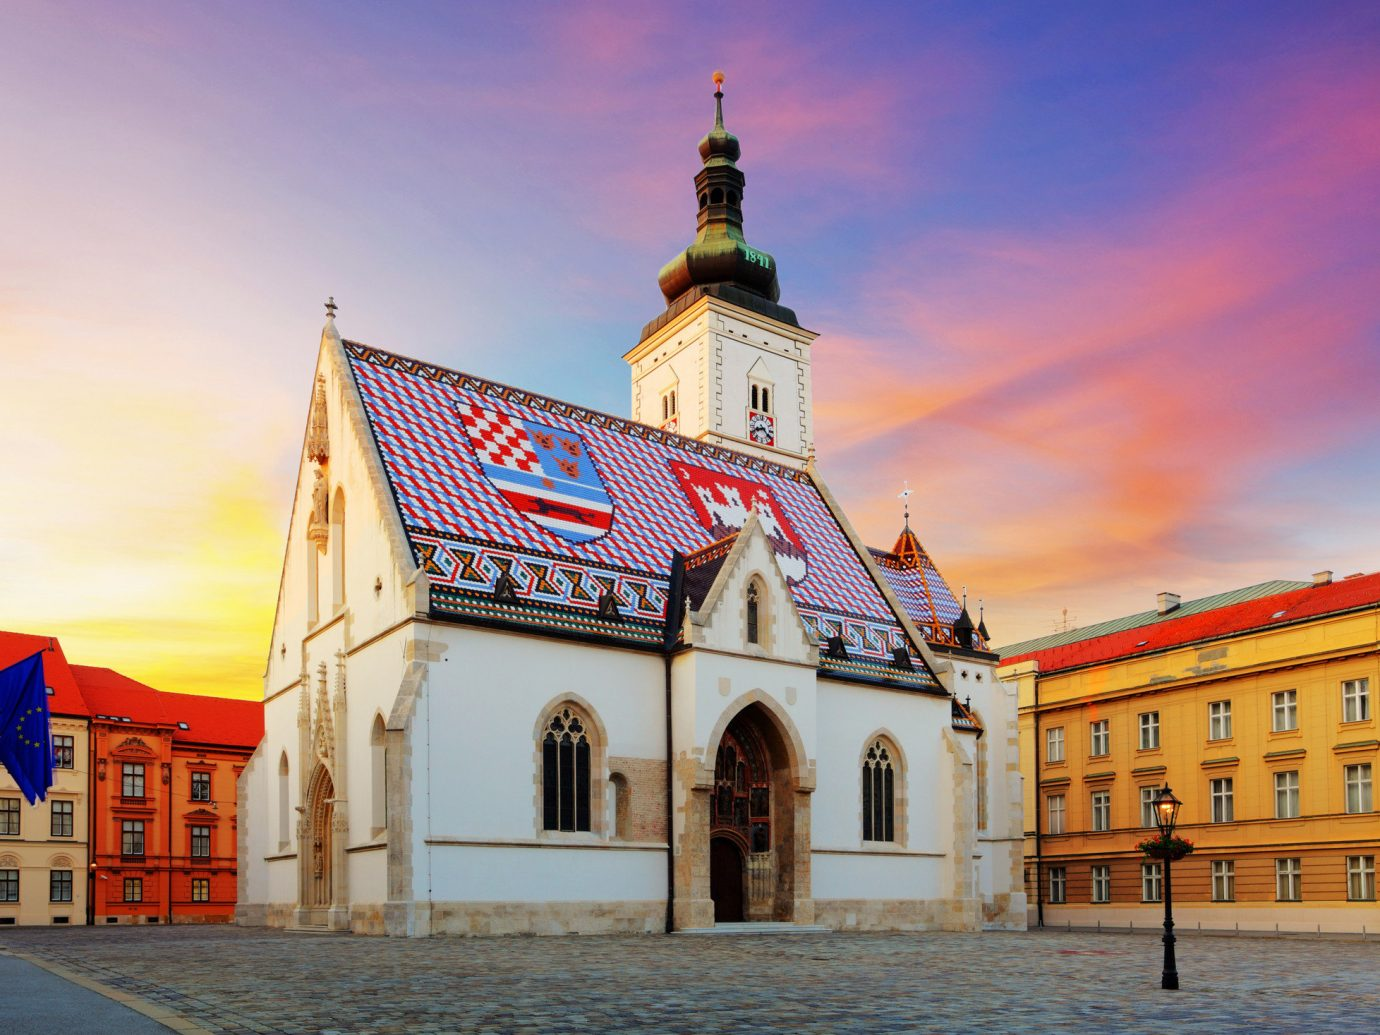 Trip Ideas outdoor sky landmark building Town Church place of worship facade evening cathedral tower monastery basilica old